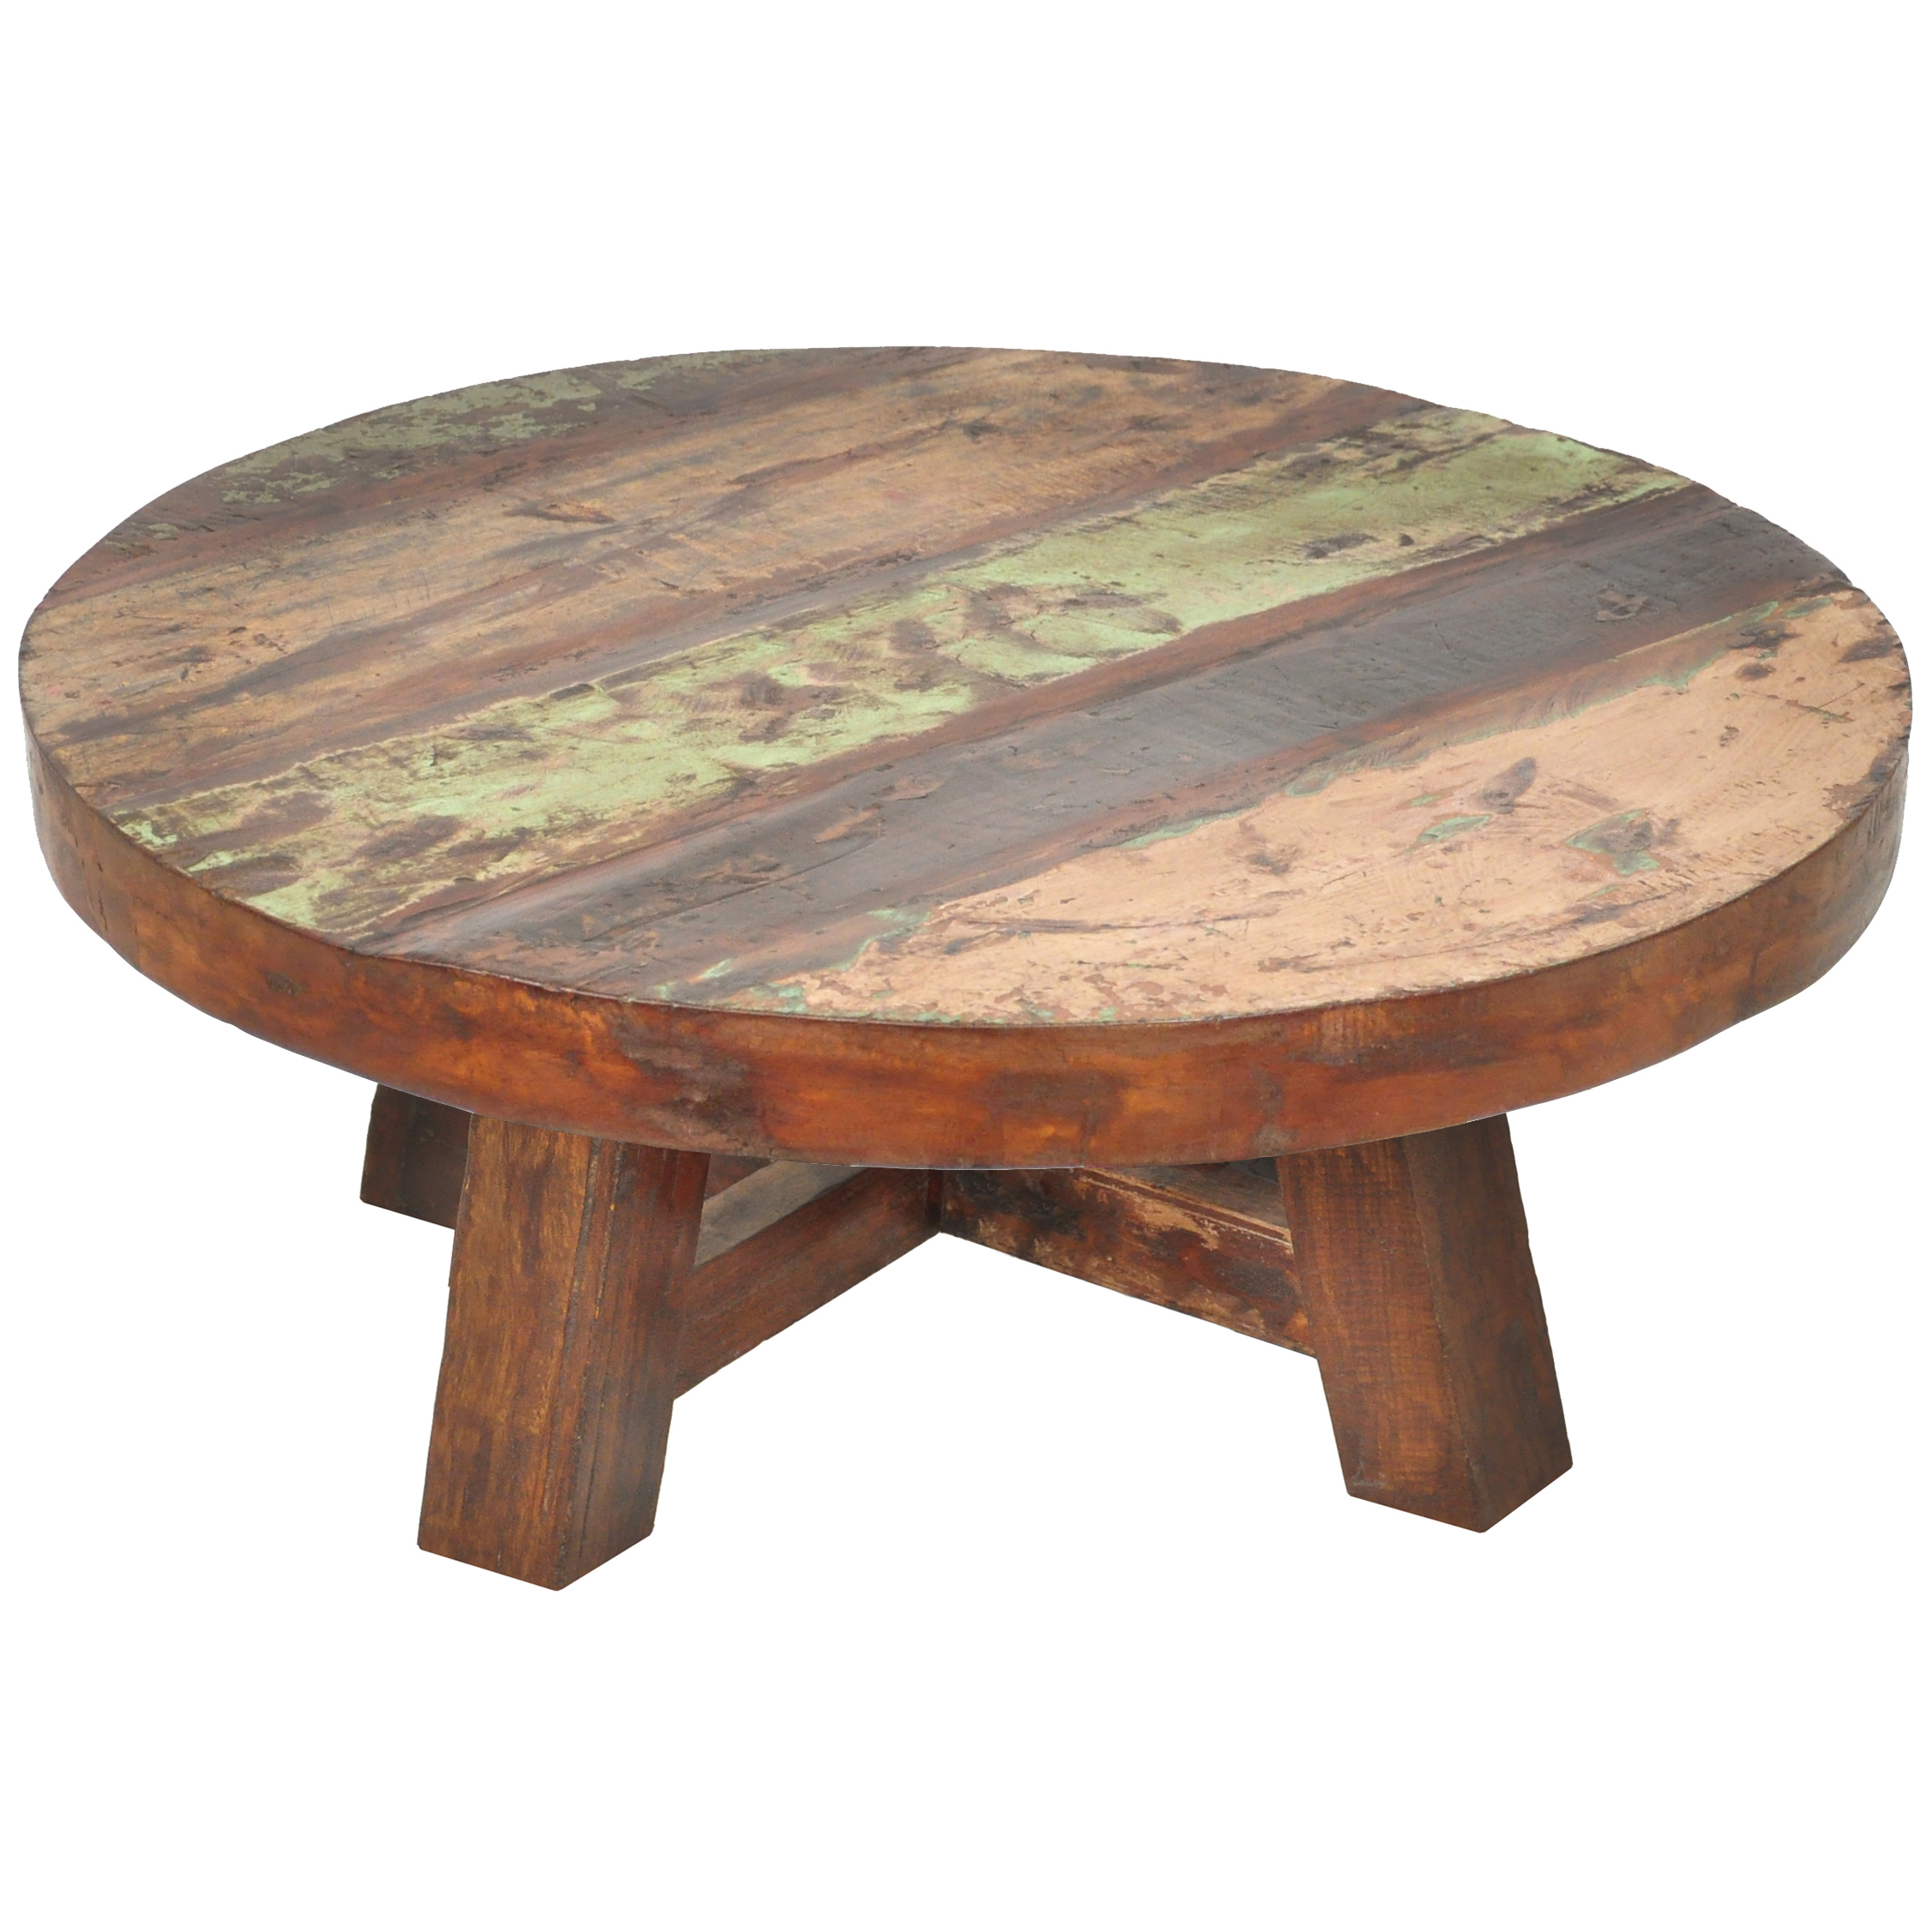 coffee table small round tables outdoor side with drawer nautical wall sconces bathroom oak occasional the pier furniture clearance piece sets under cast iron frame monarch end